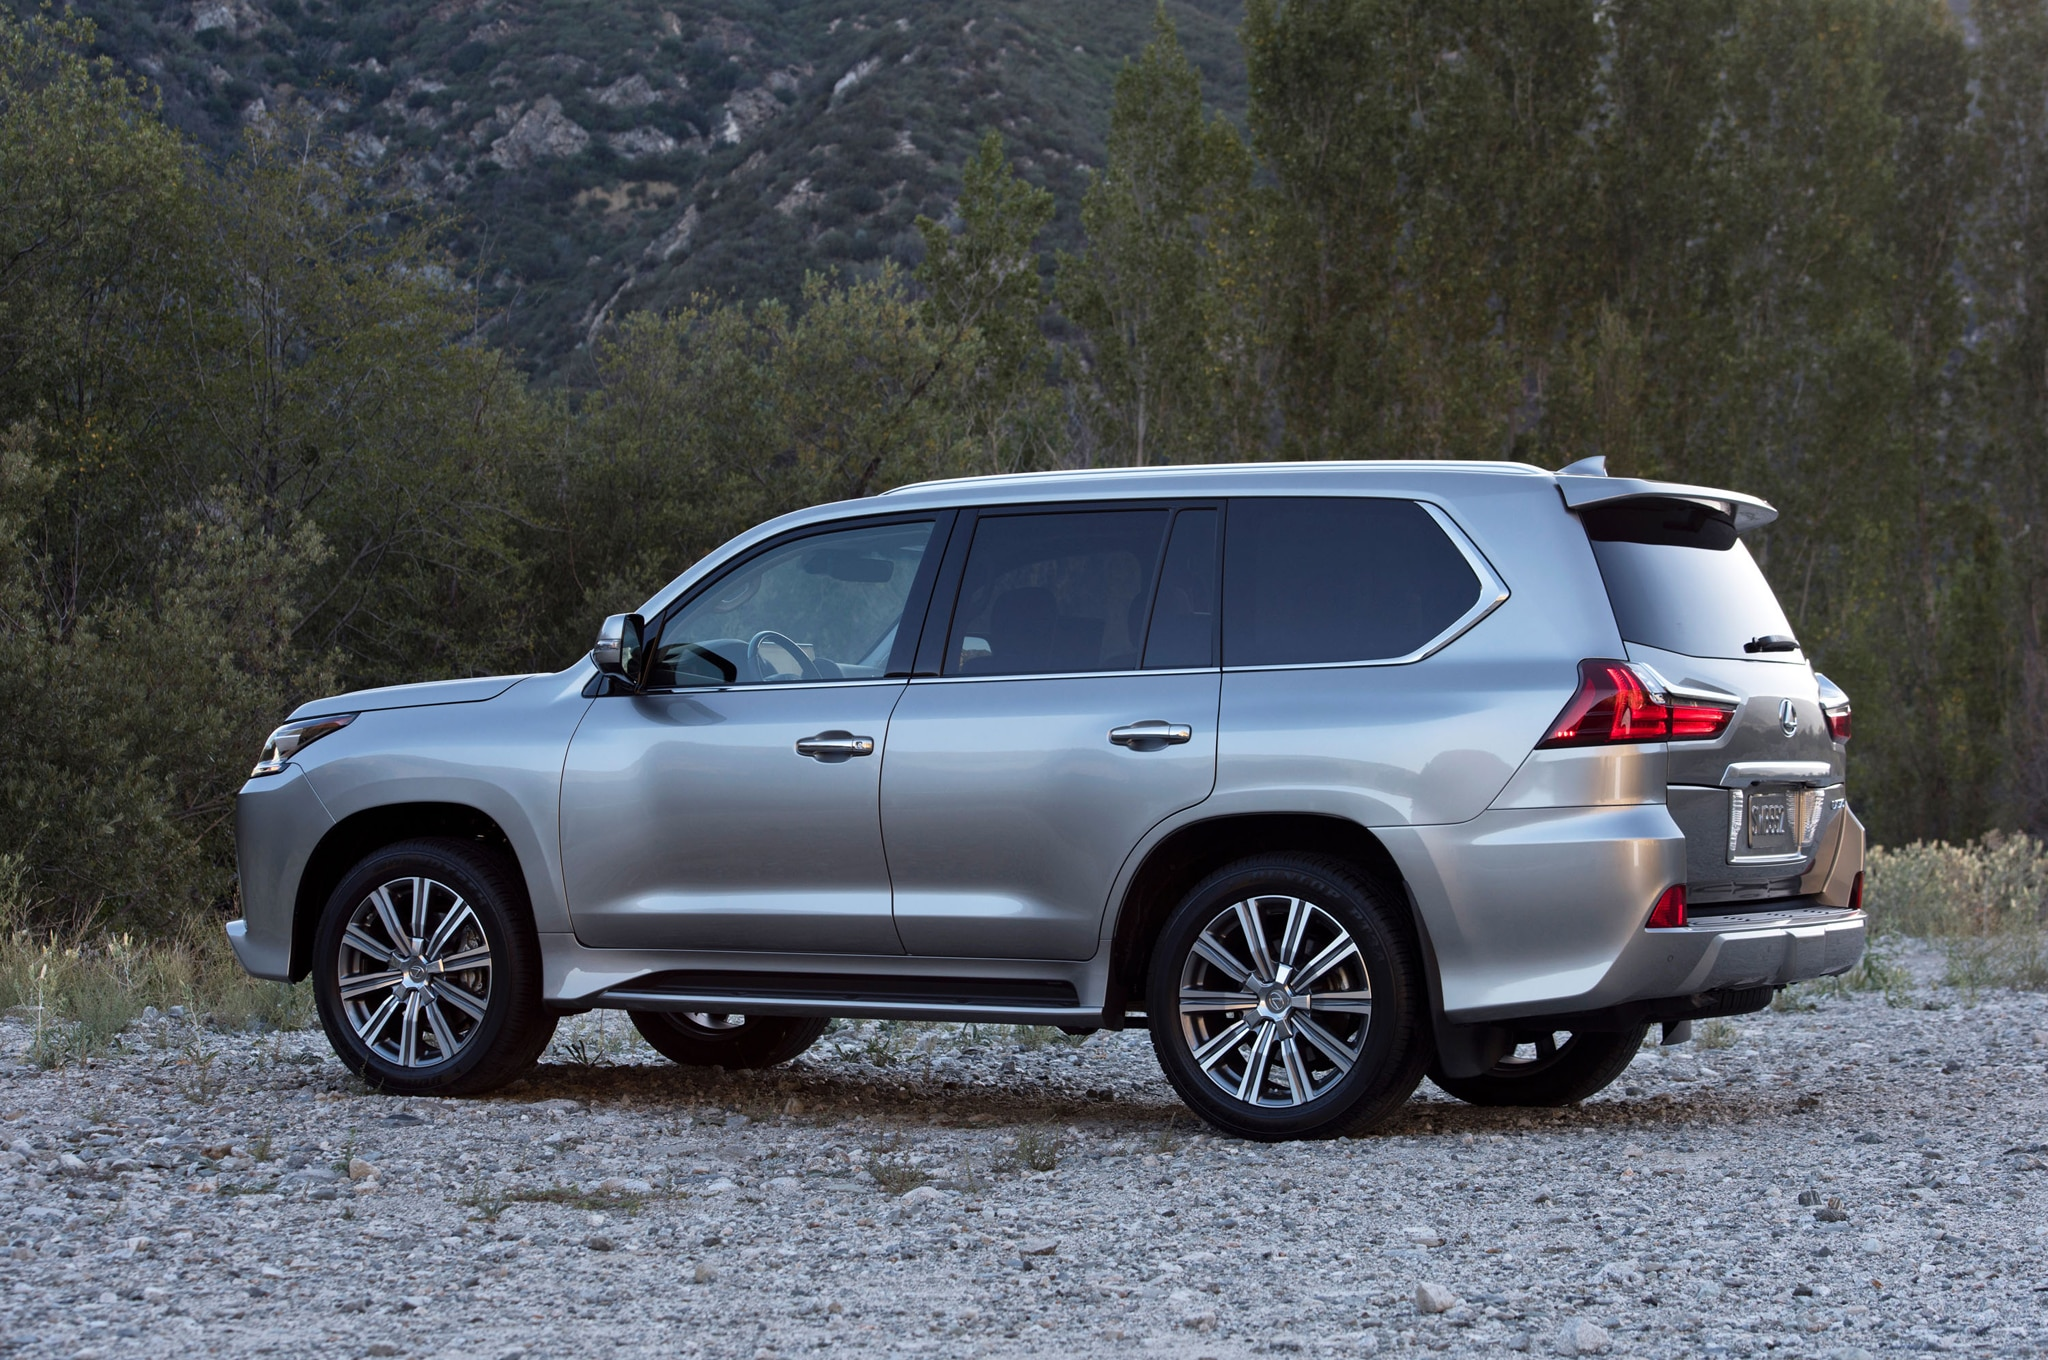 https://st.automobilemag.com/uploads/sites/10/2015/09/2016-Lexus-LX-570-rear-three-quarter.jpg